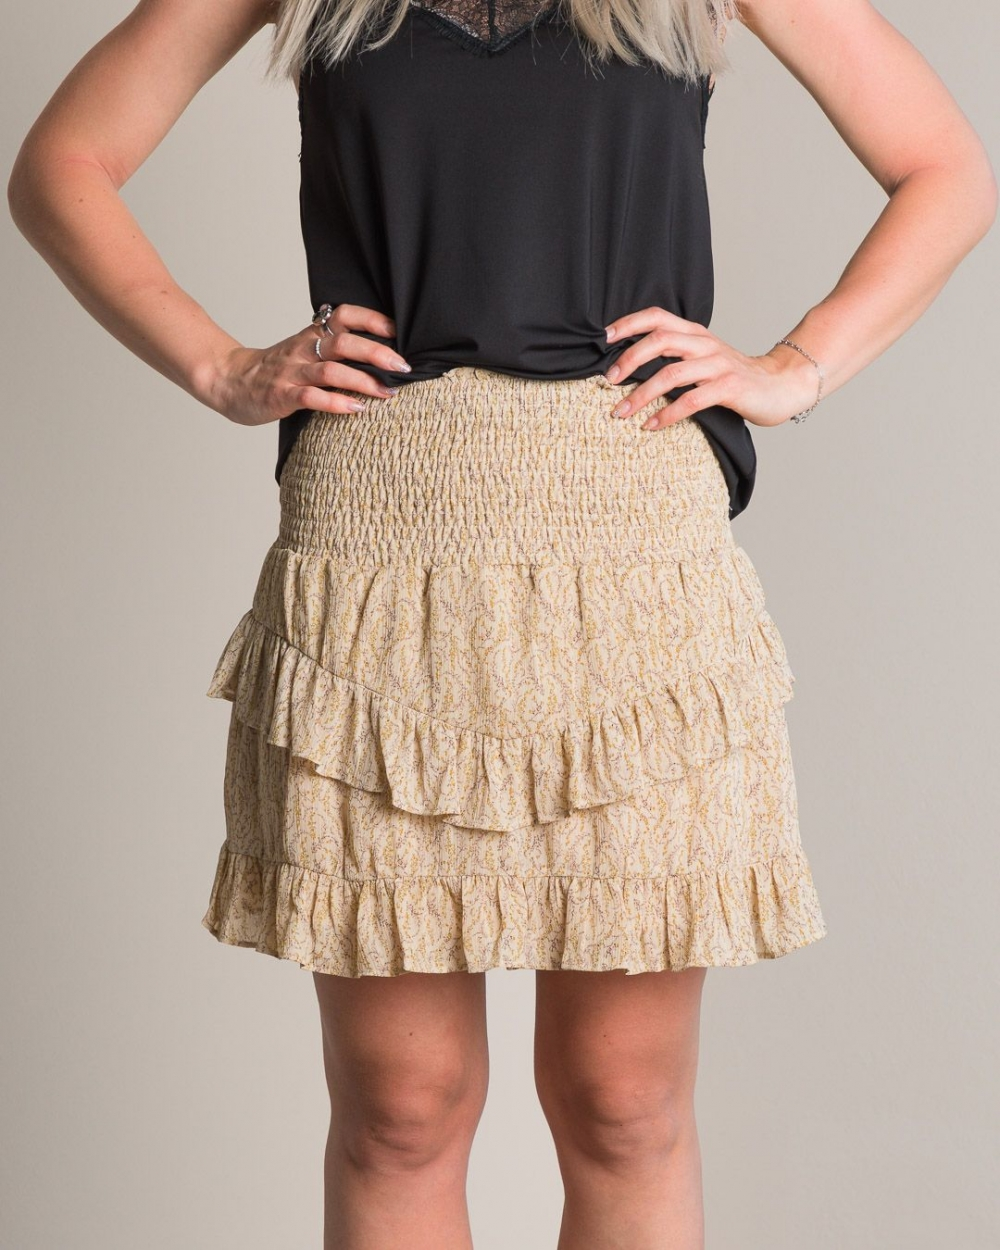 Neo Noir Line Flower Skirt - Dusty Yellow